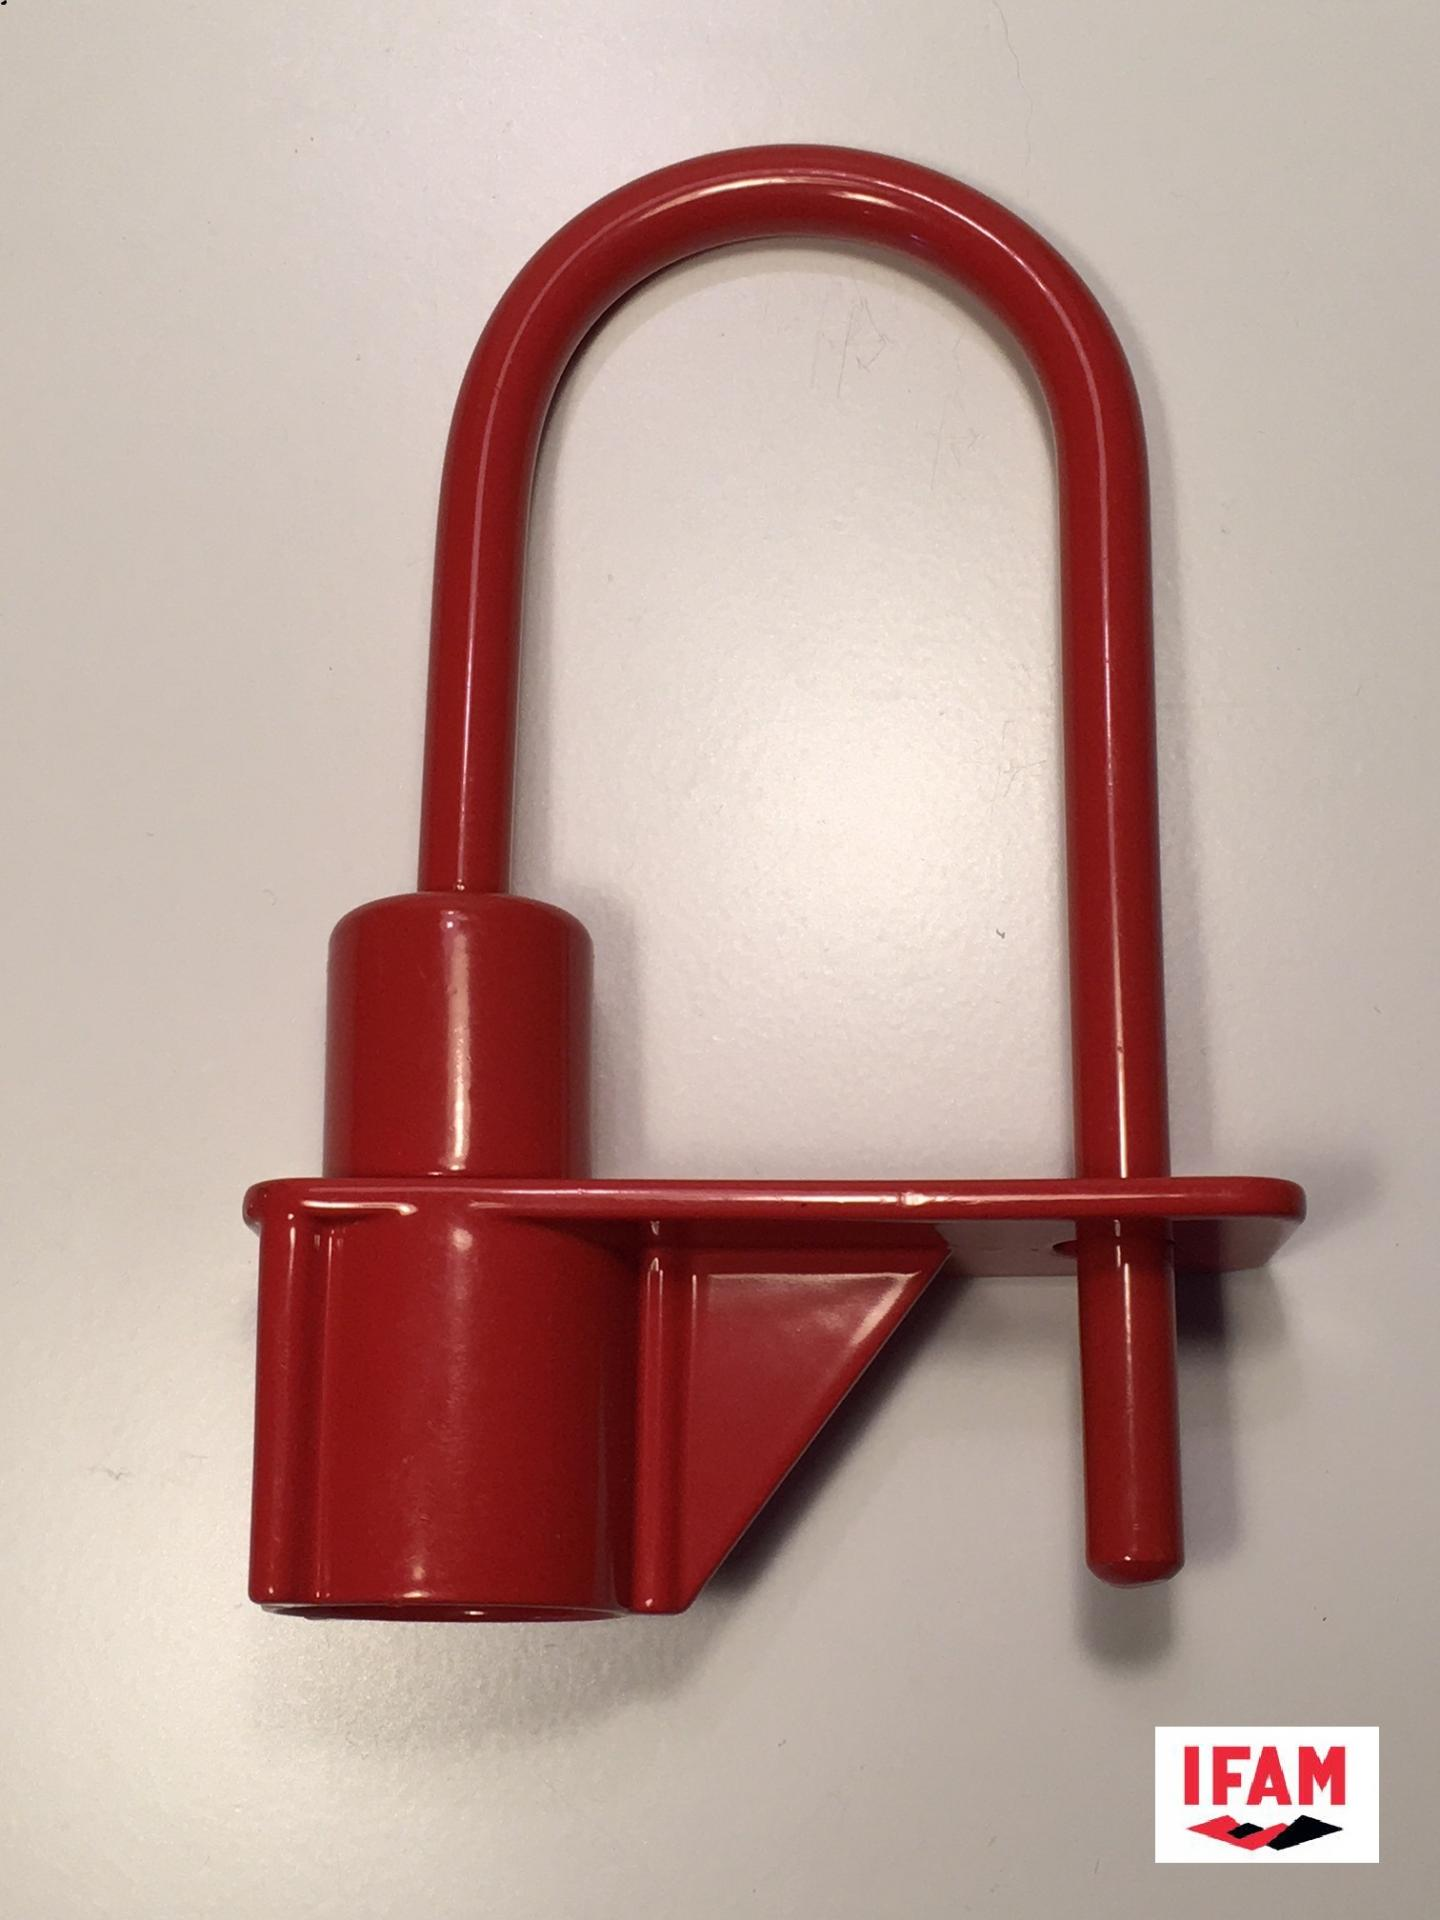 Cadenas pompier triangle de 14 mm ifam rouge